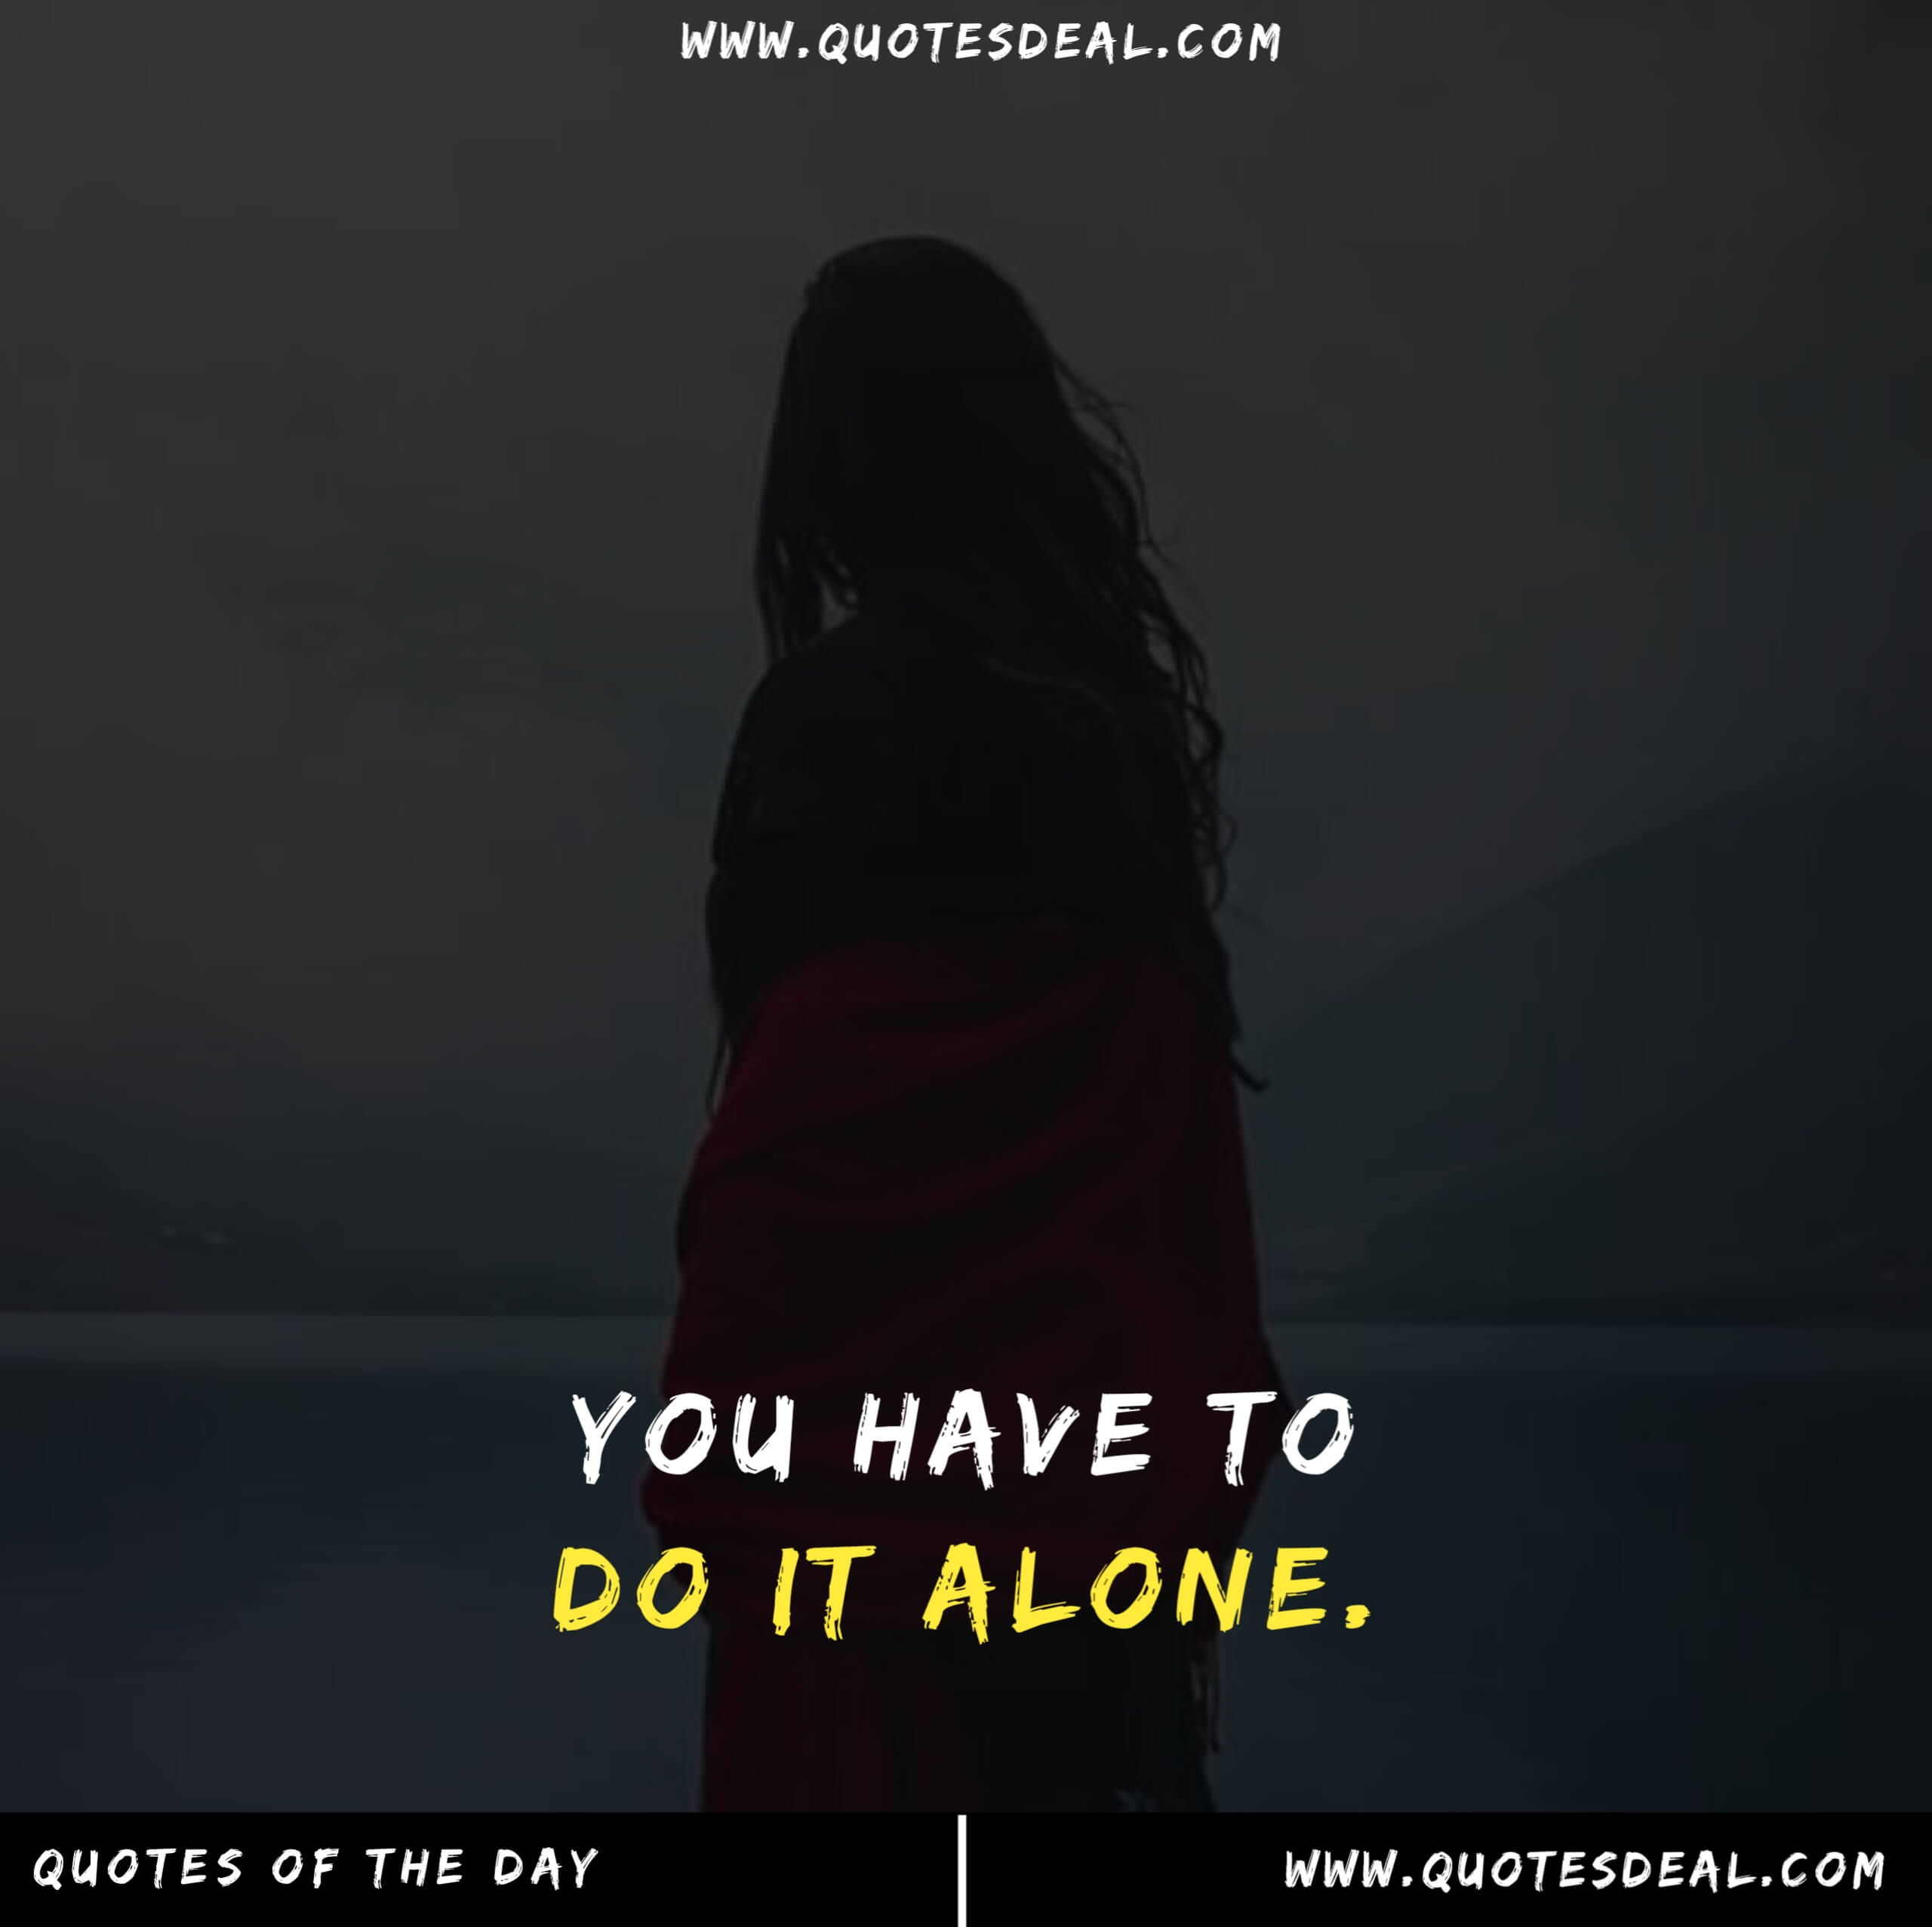 You have to do it alone